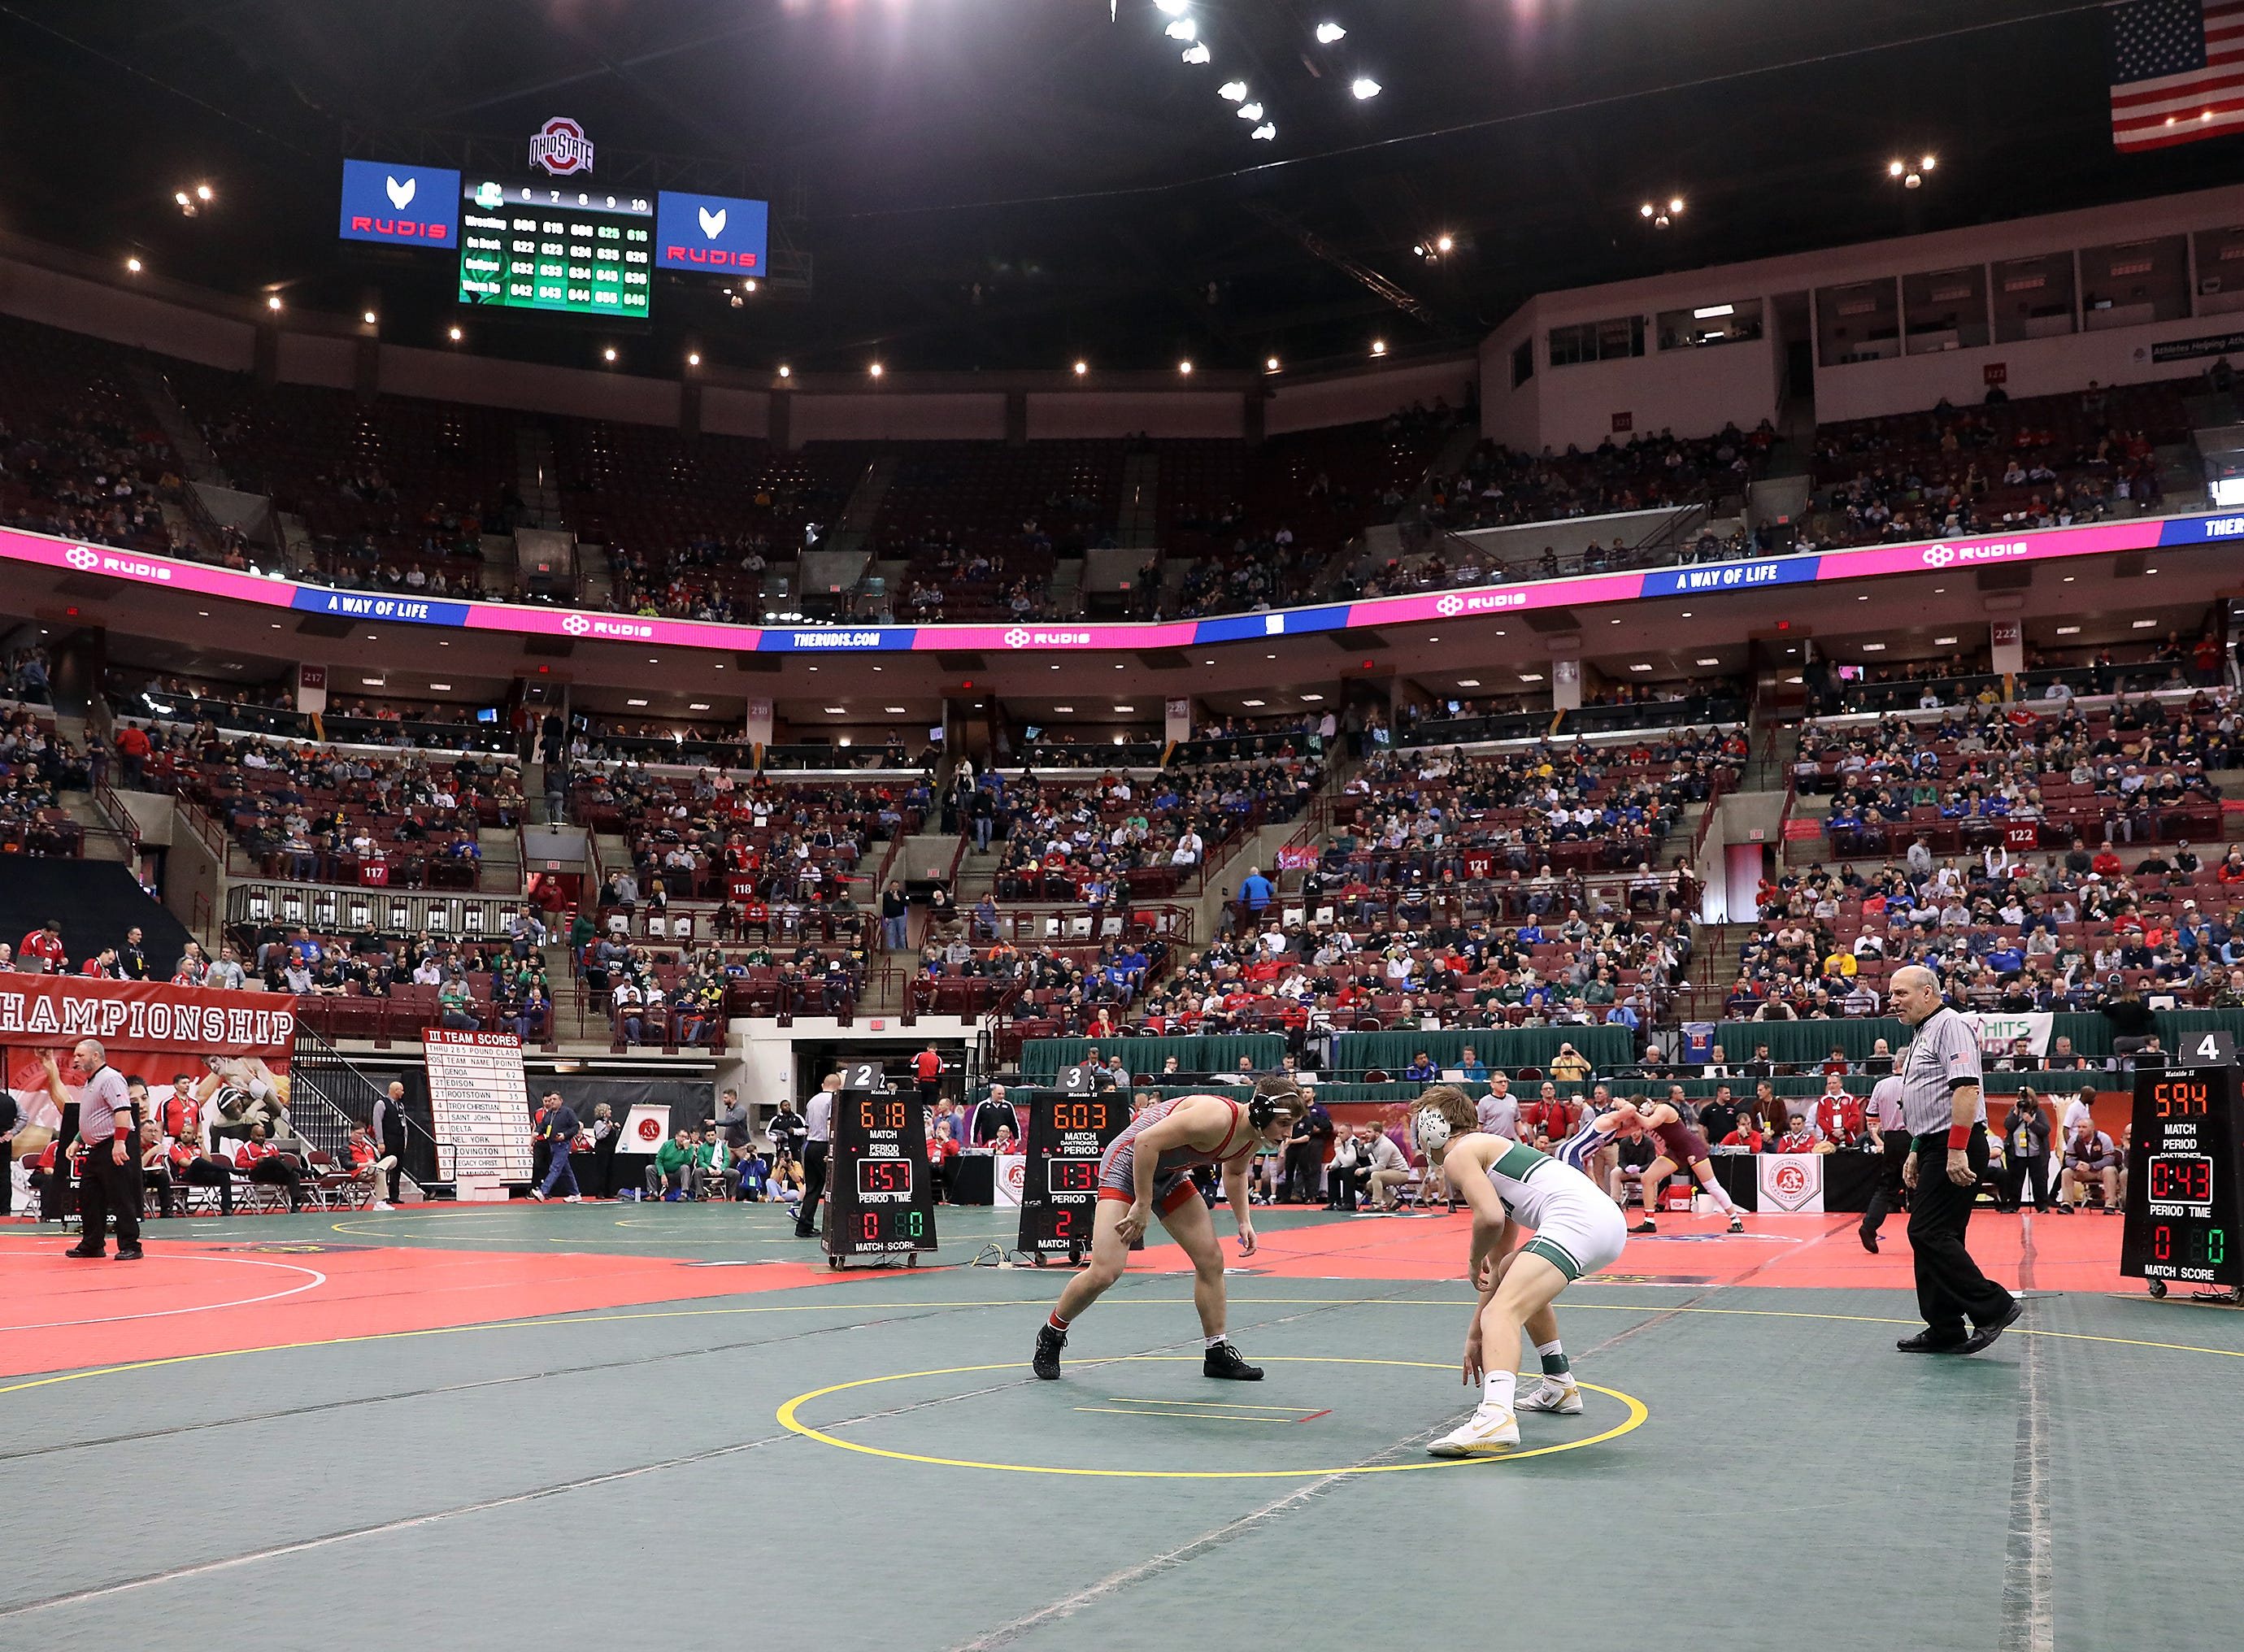 Bellevue's Justin Mayes wrestles Aurora's Will McGhee in the 160 pound weight class at the Division II state wrestling tournament on Friday.